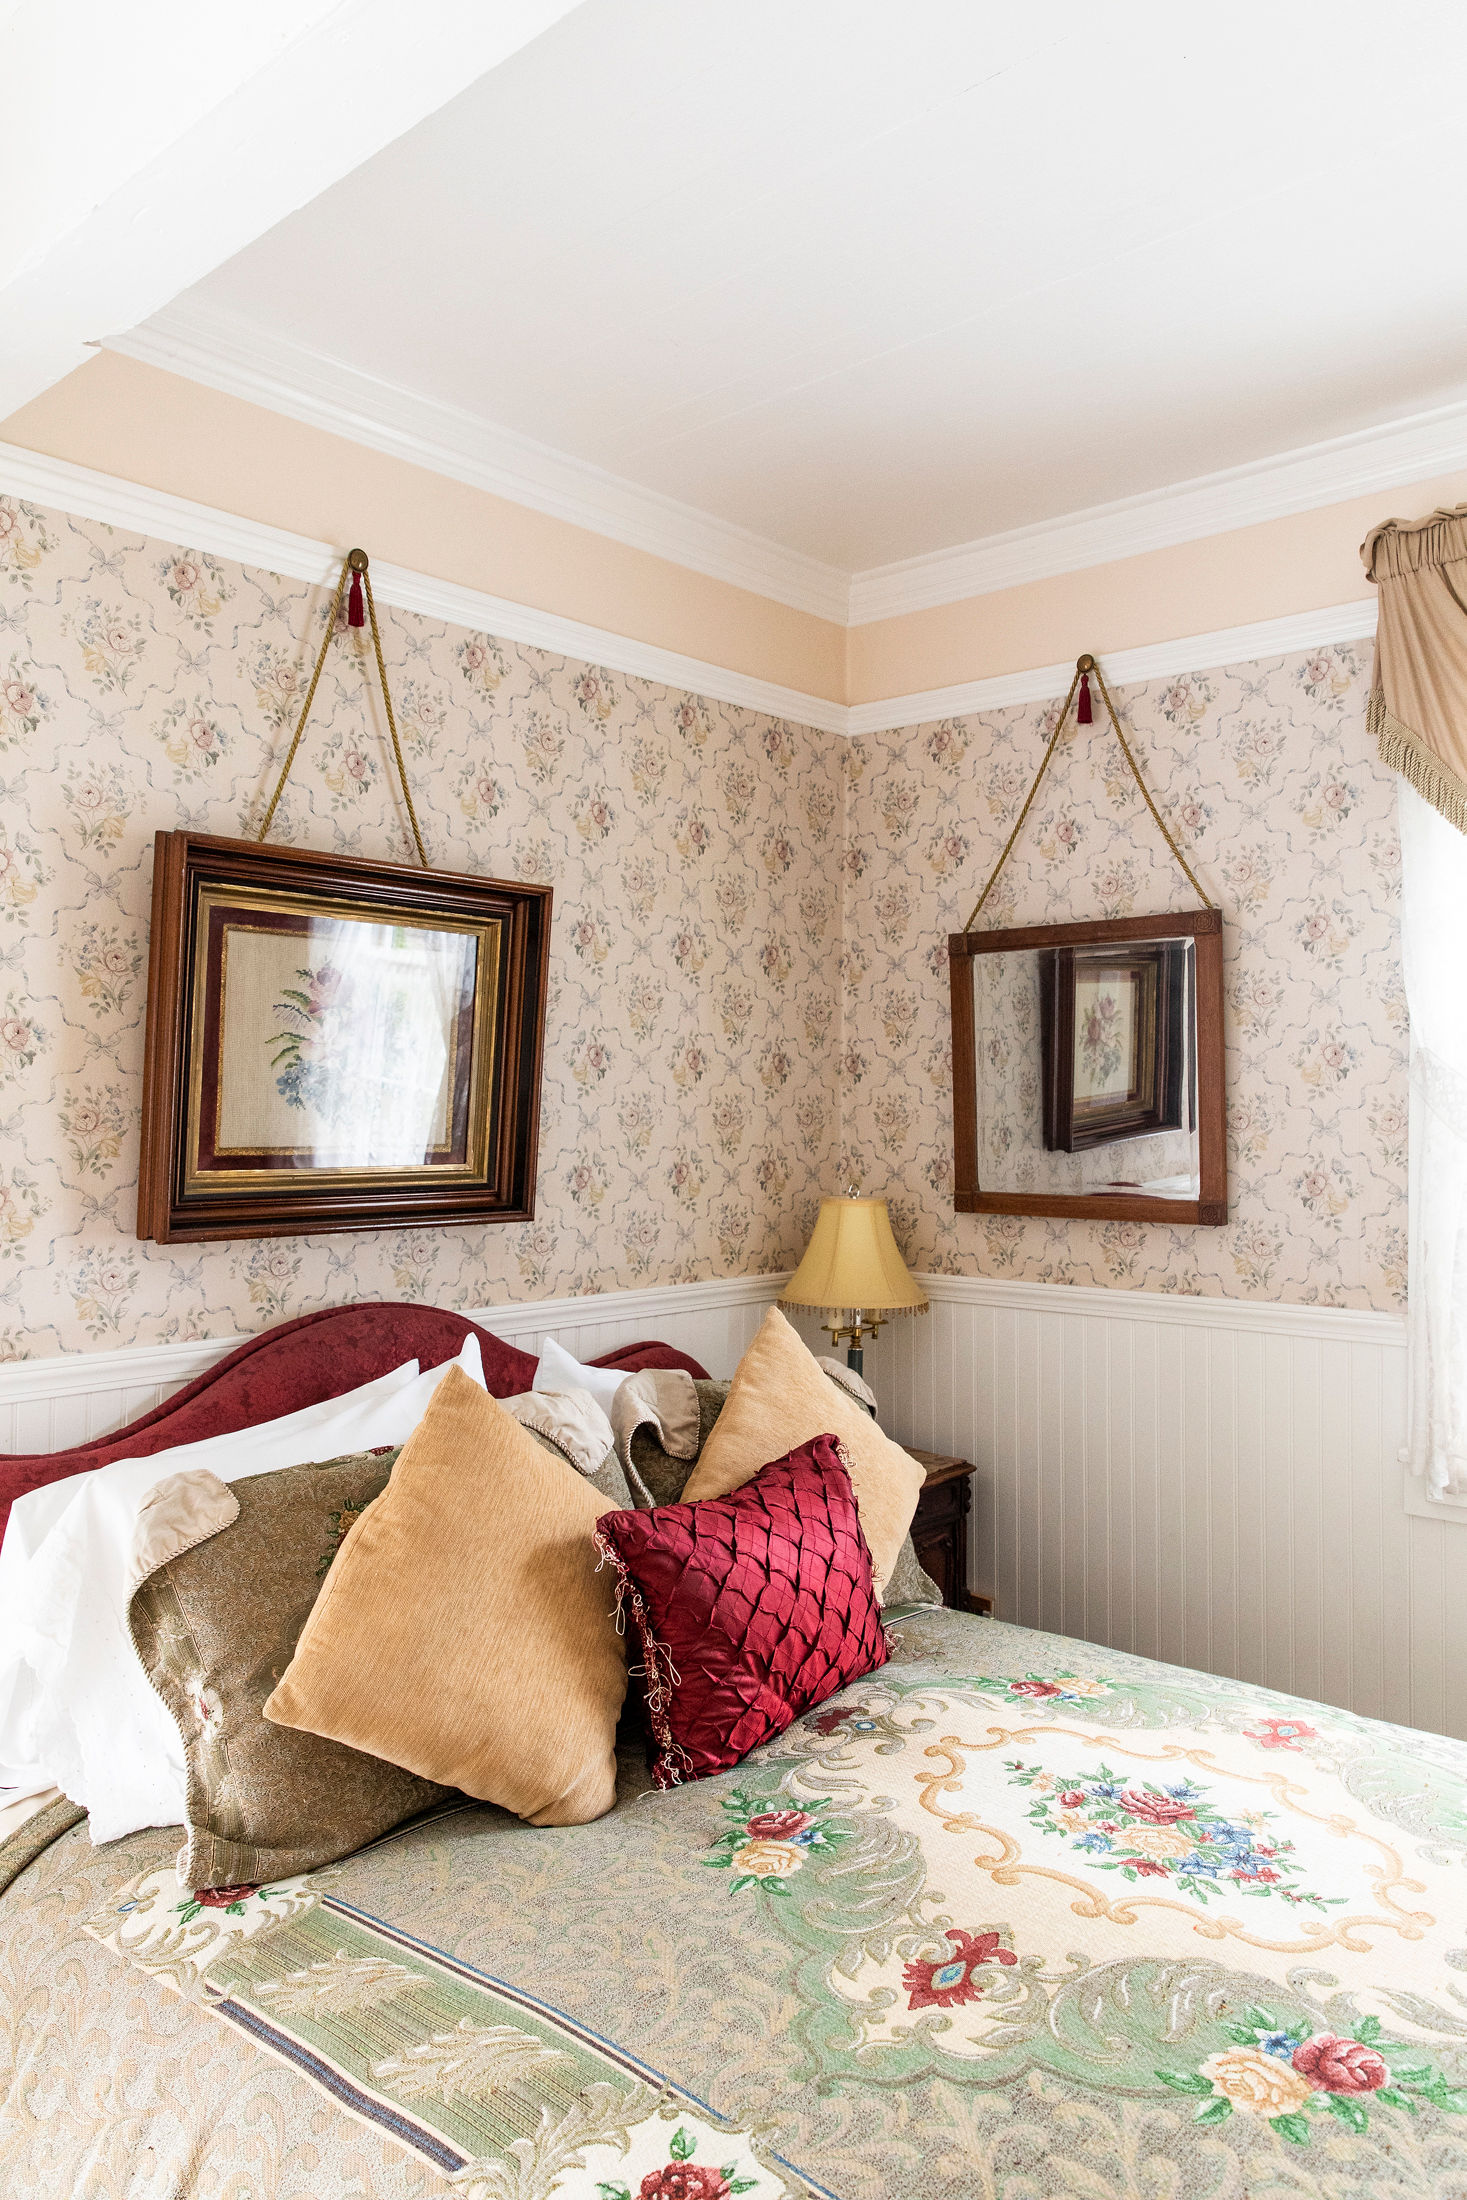 charming Victorian details in the Patricia Stofle Room at The Headlands Inn in Mendocino, California